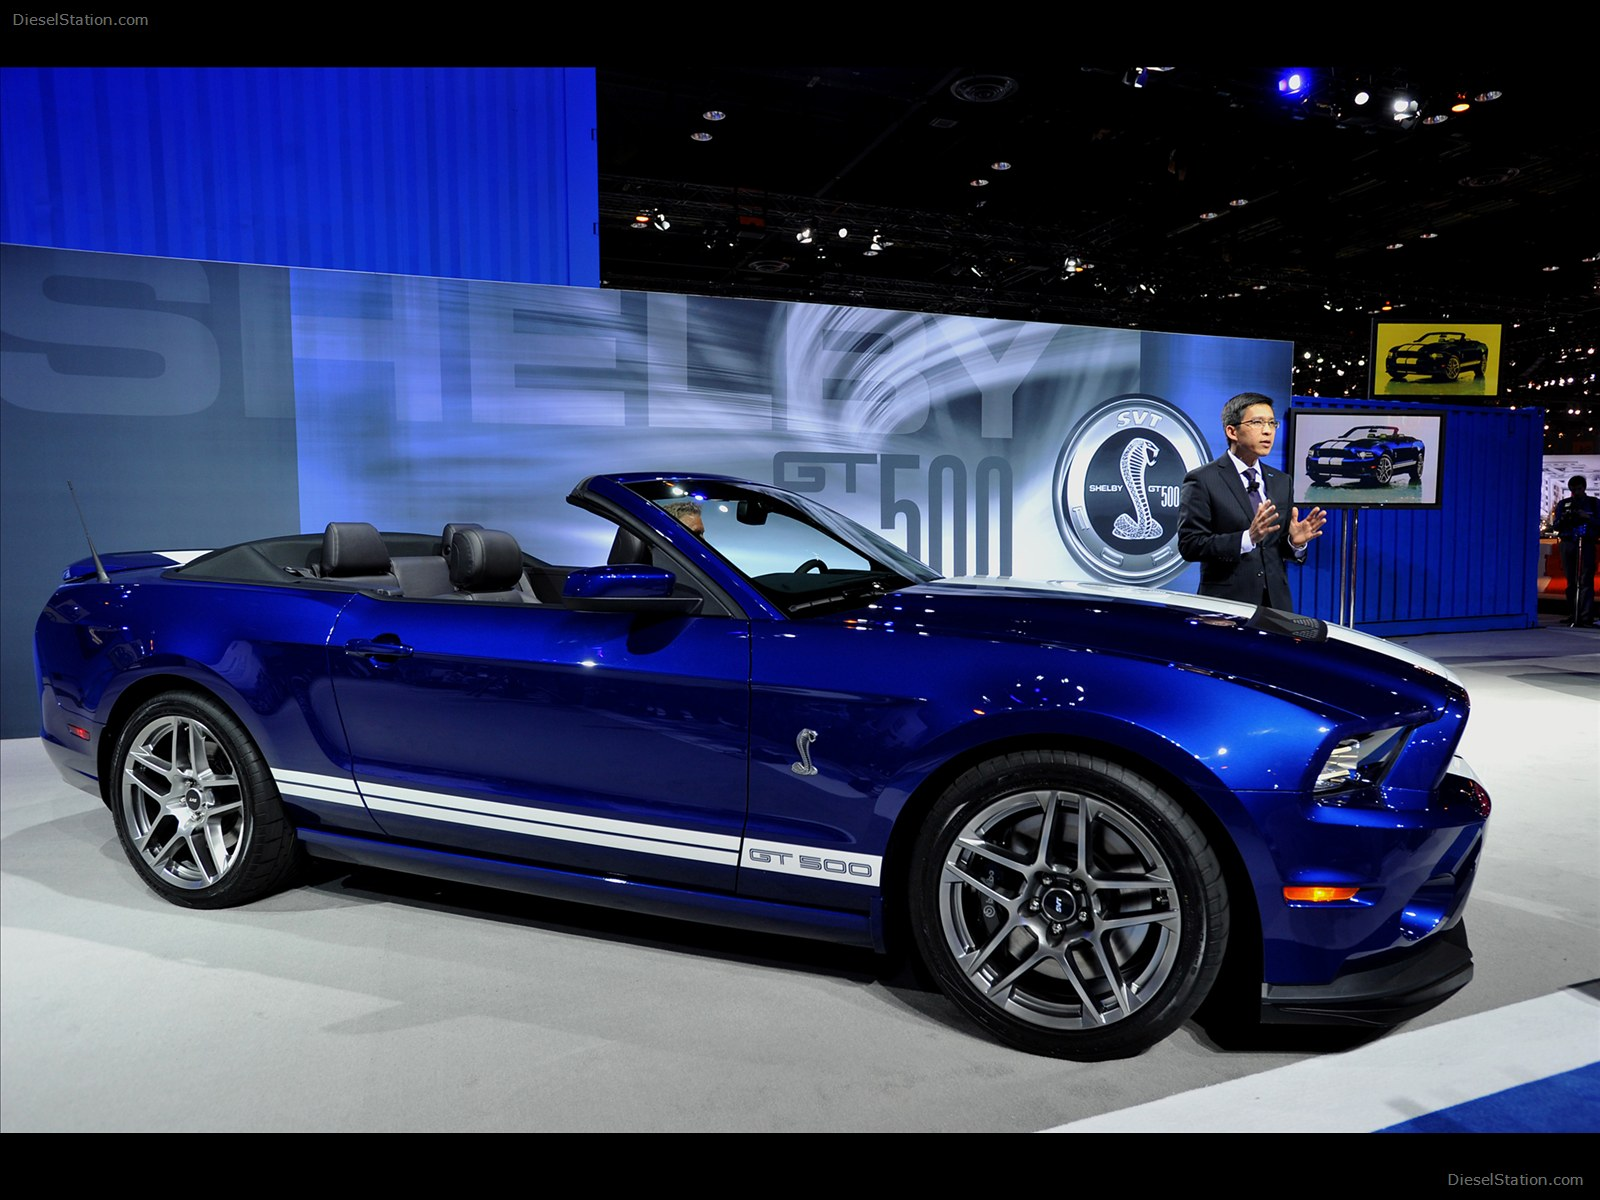 2019 Gt 500 >> 2019 Ford Mustang Shelby GT Convertible | Car Photos Catalog 2018